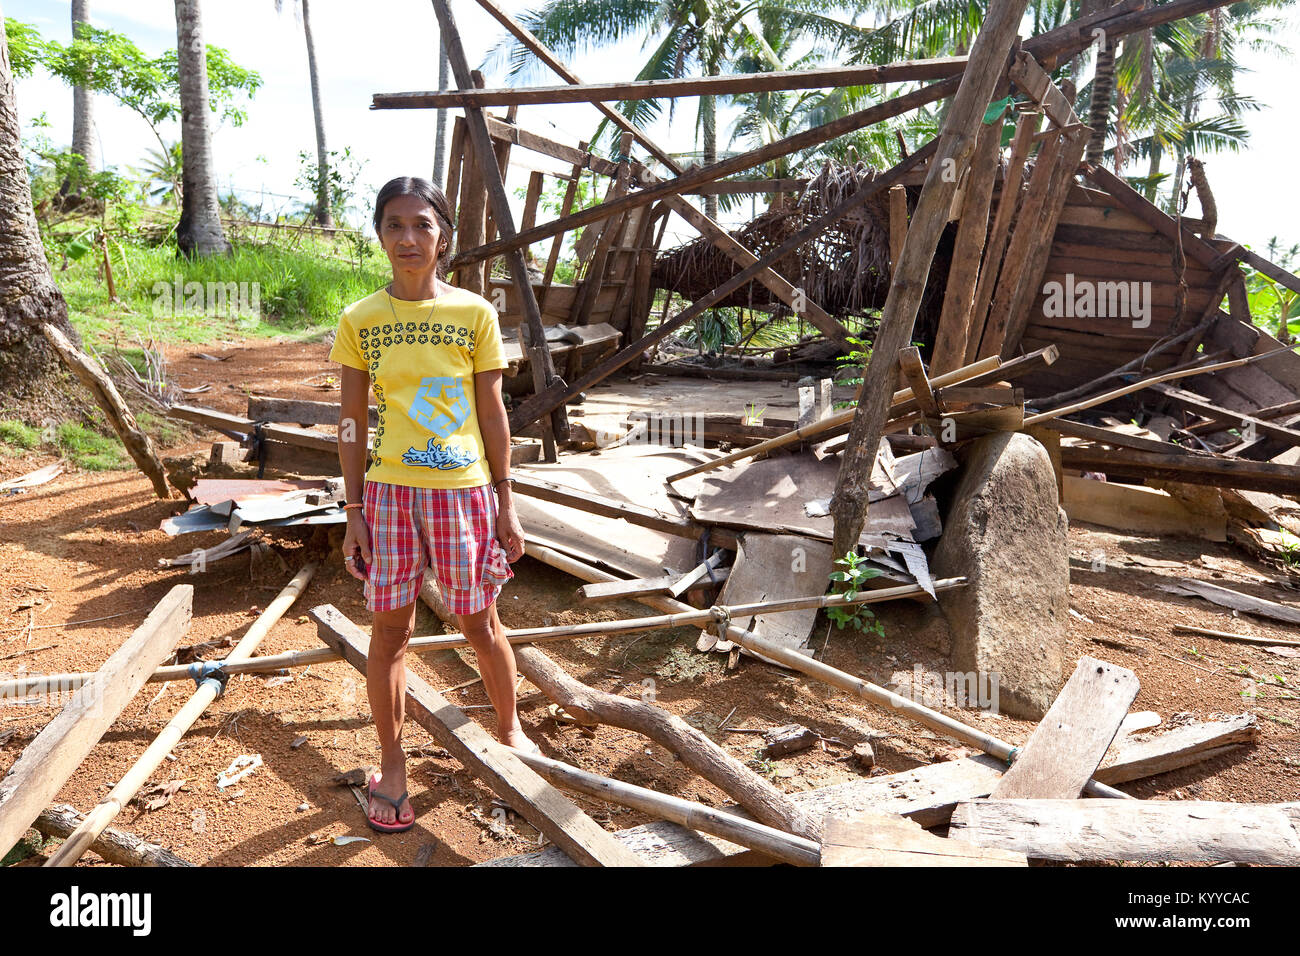 Lady stands in front of the remains of her house, destroyed by Typhoon Glenda, in rural Banquerohan, Albay, Philippines. - Stock Image